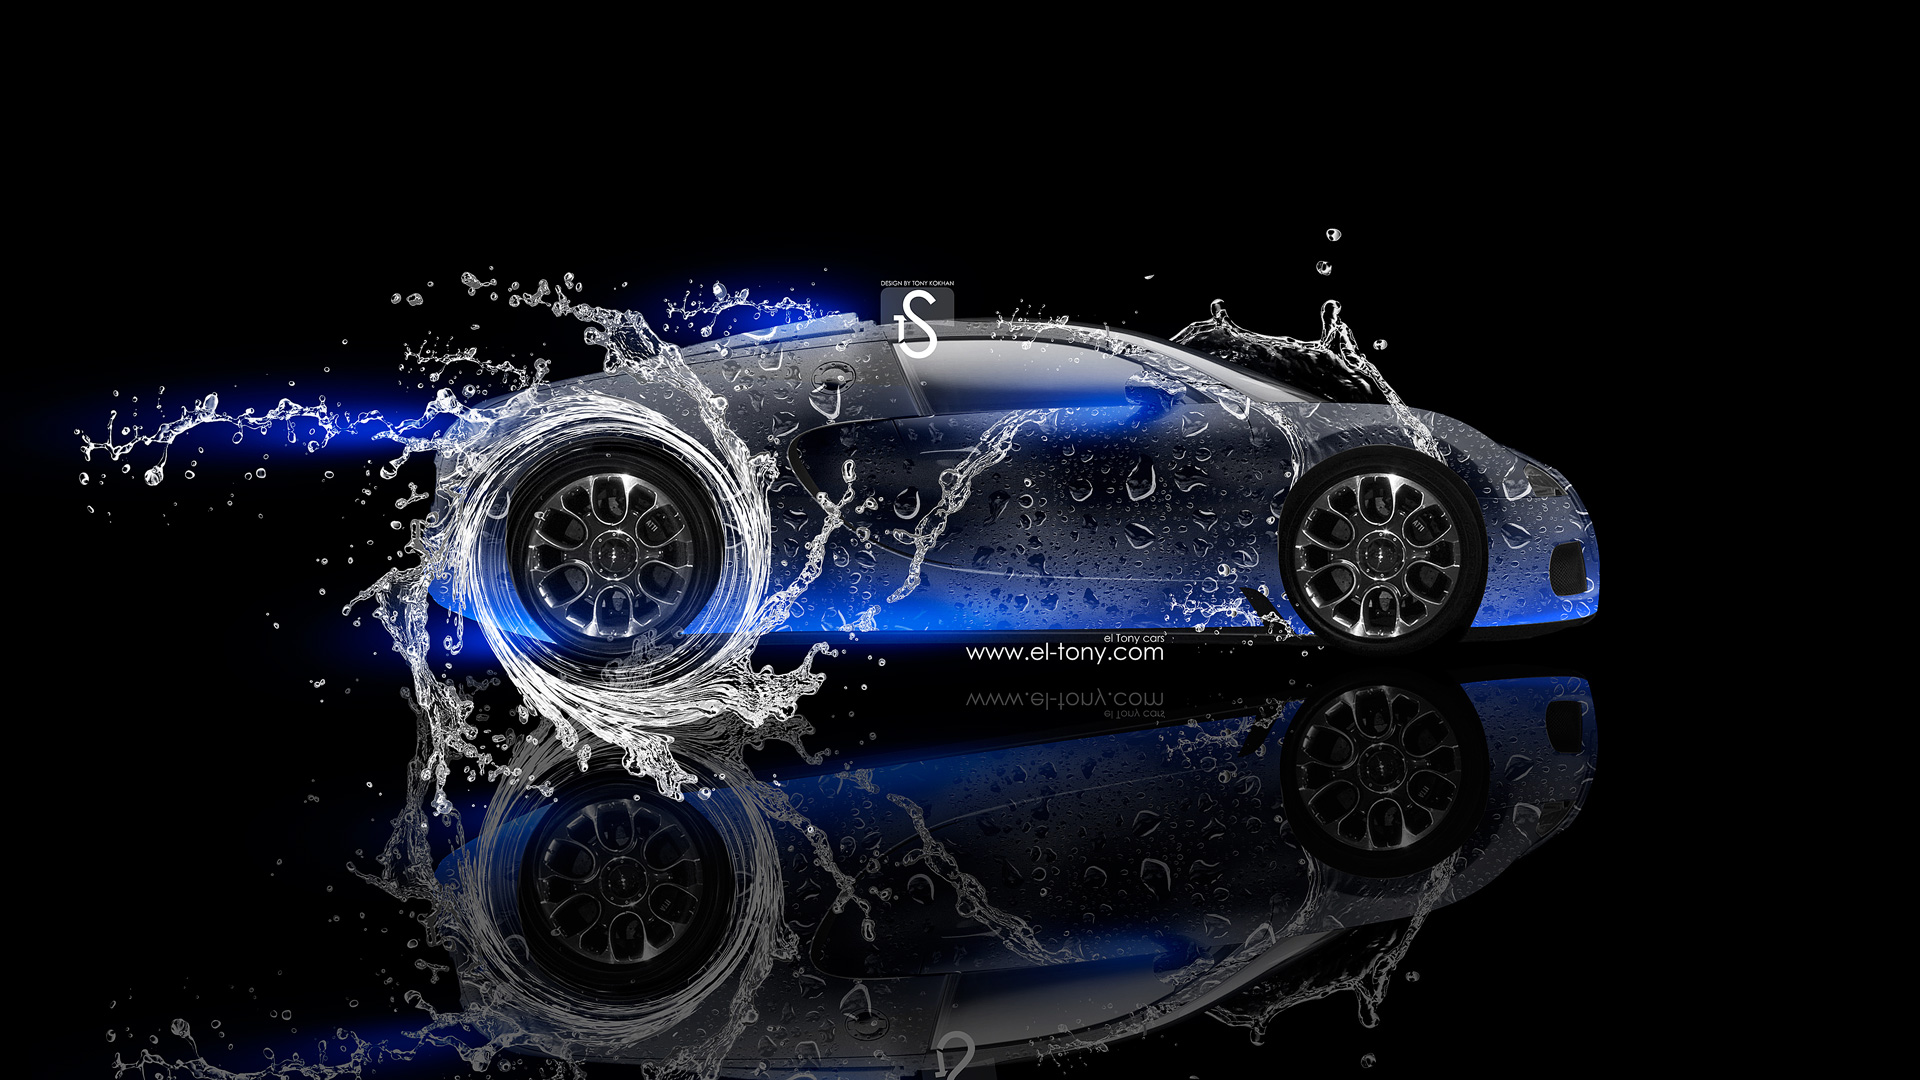 Bugatti Veyron Super Water Car 2013